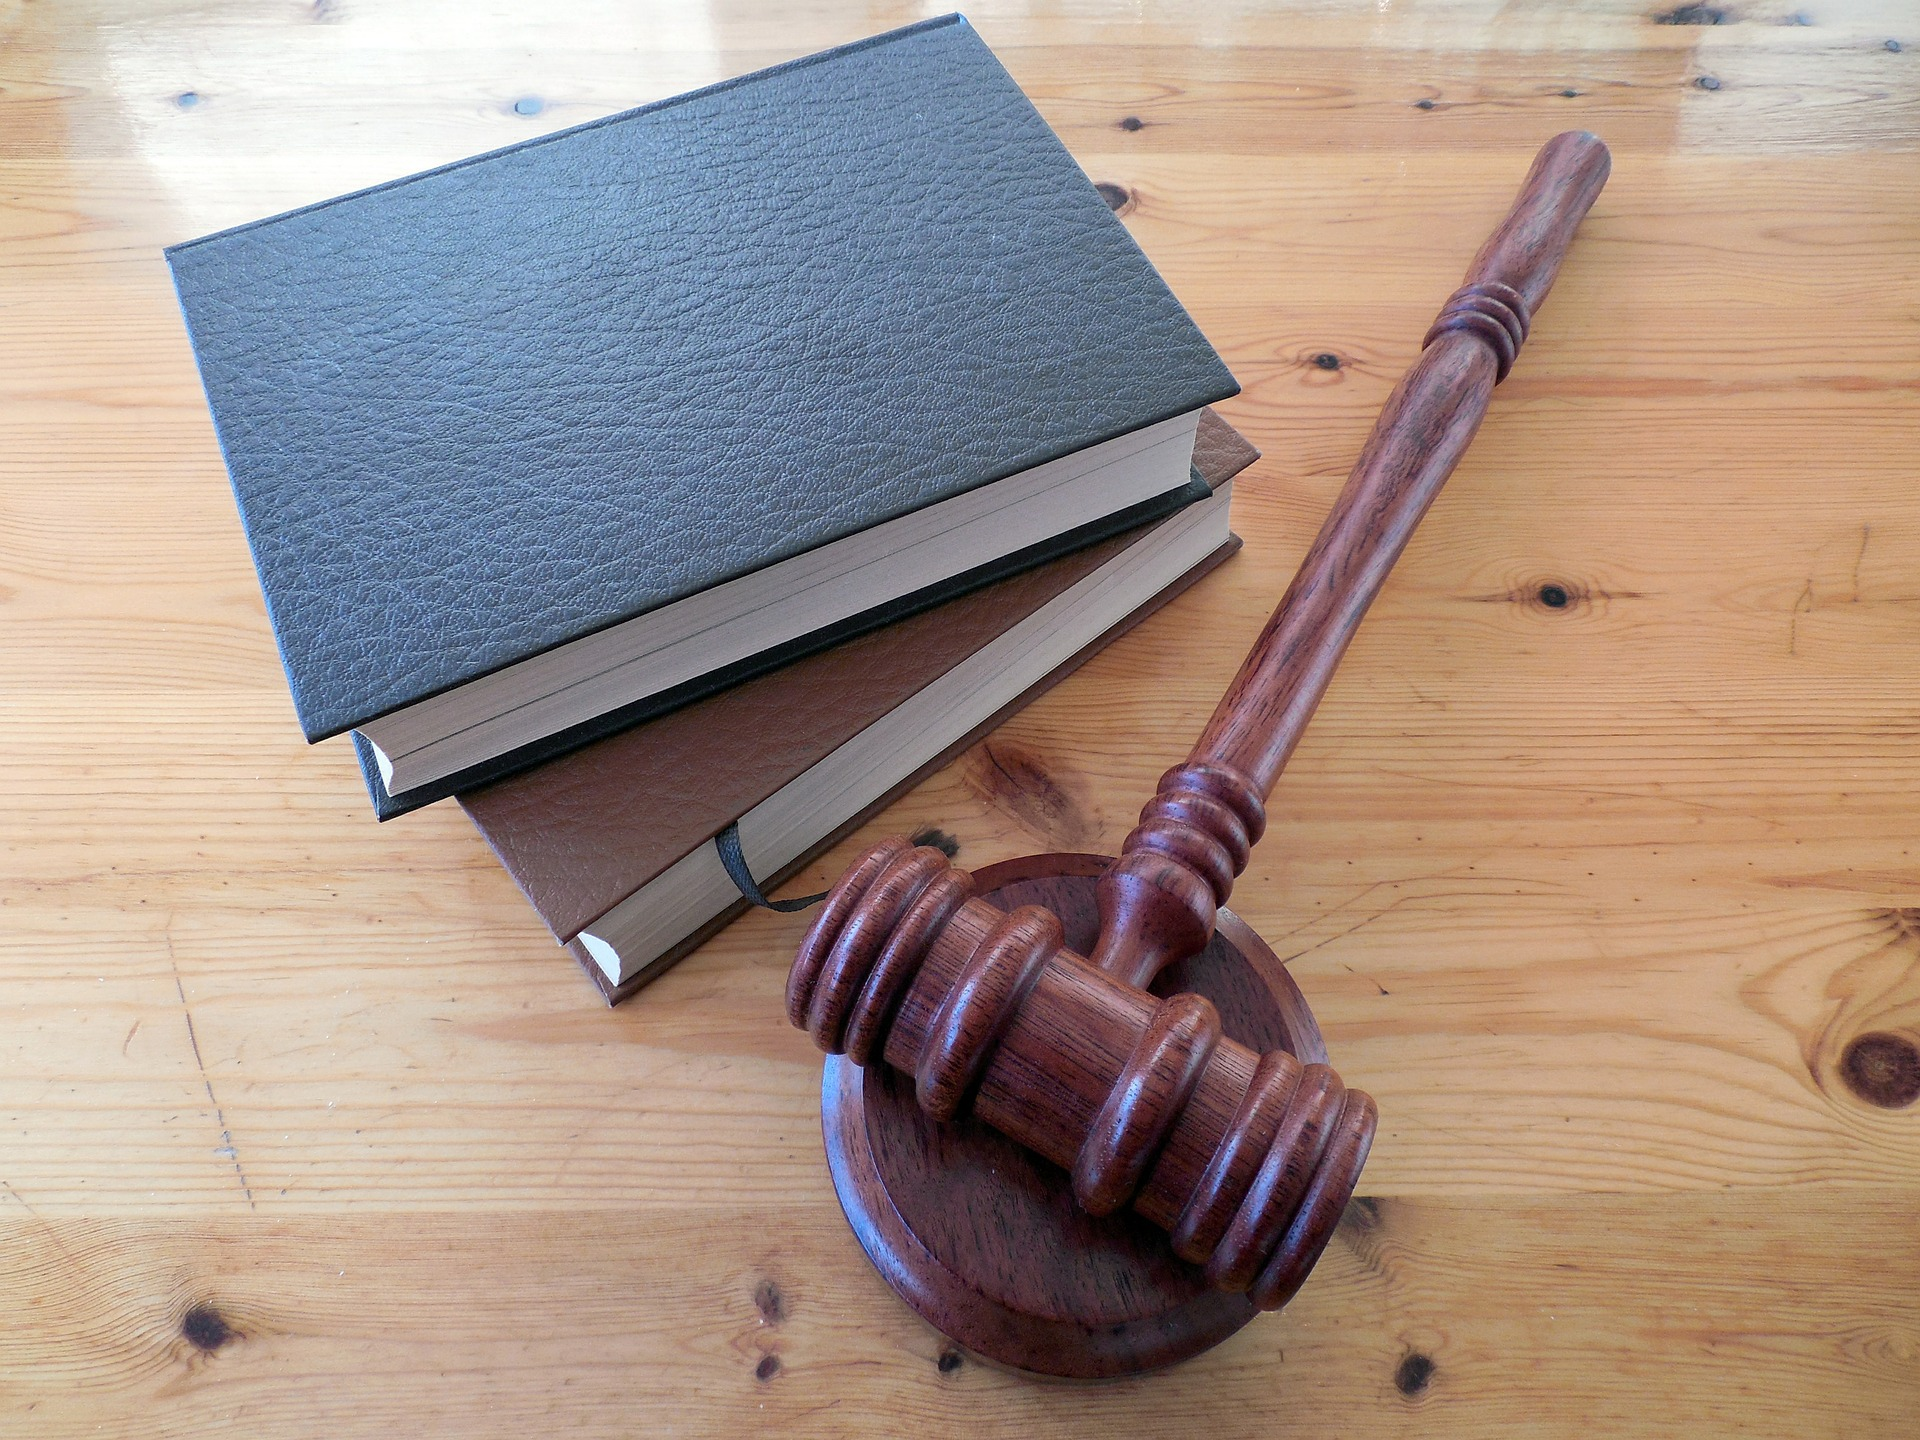 An image showing books and hammer of law